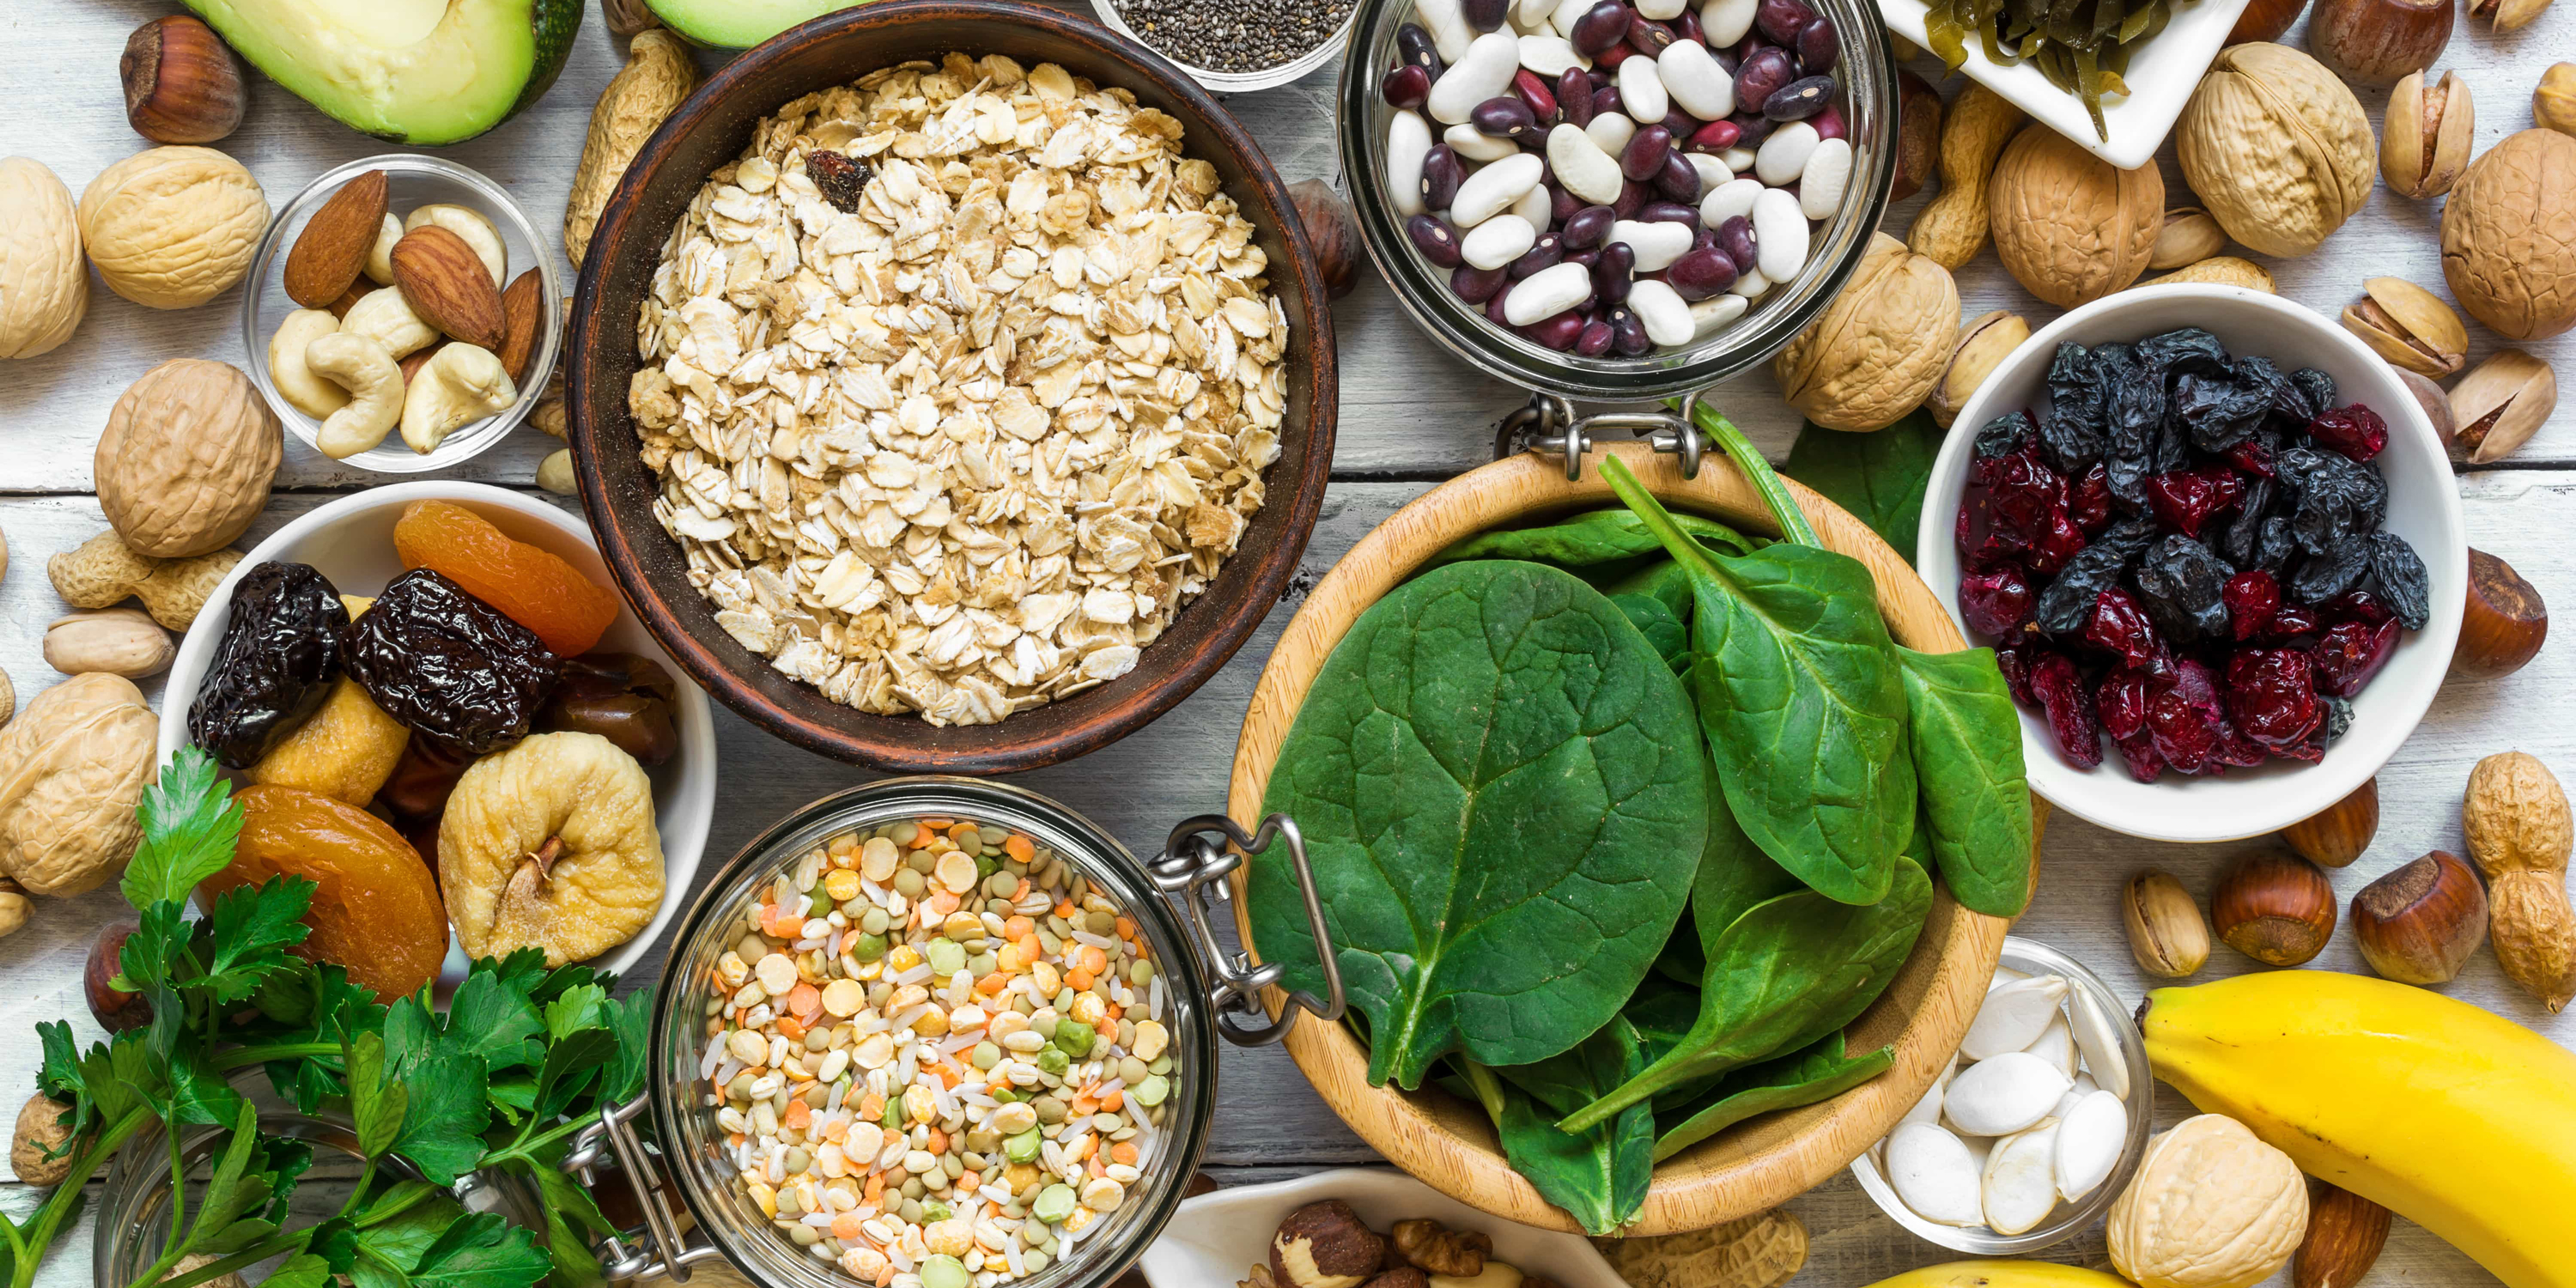 9 Foods Richin Magnesium To Add To Your Diet